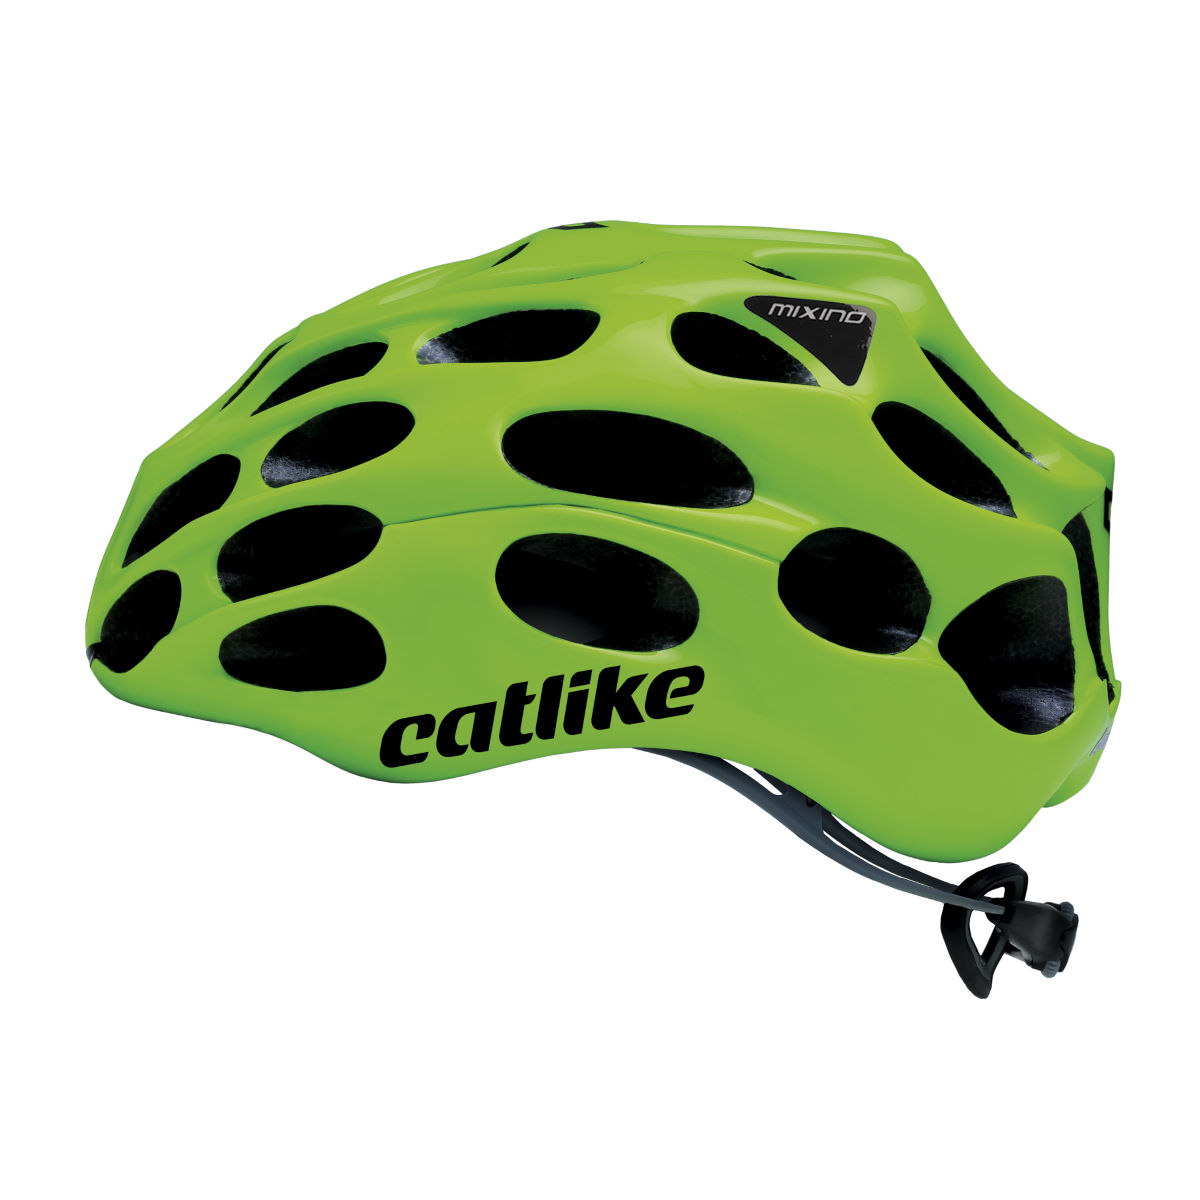 Casque de route Catlike Mixino - Small Fluro Green Casques de route